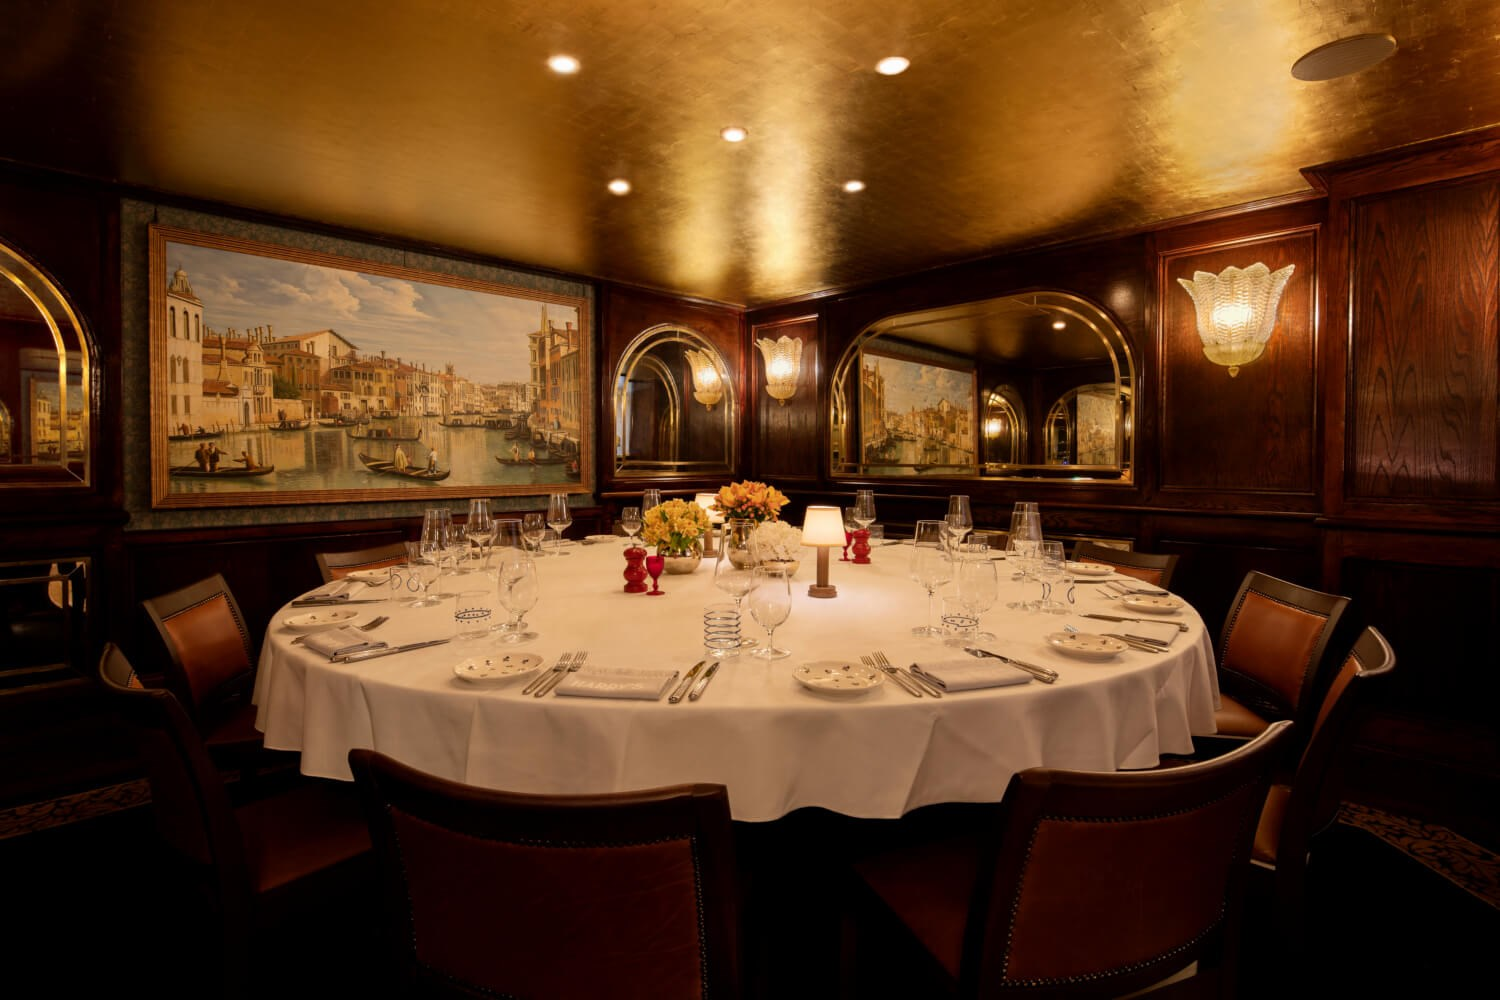 The Canaletto Room at Harry's Dolce Vita